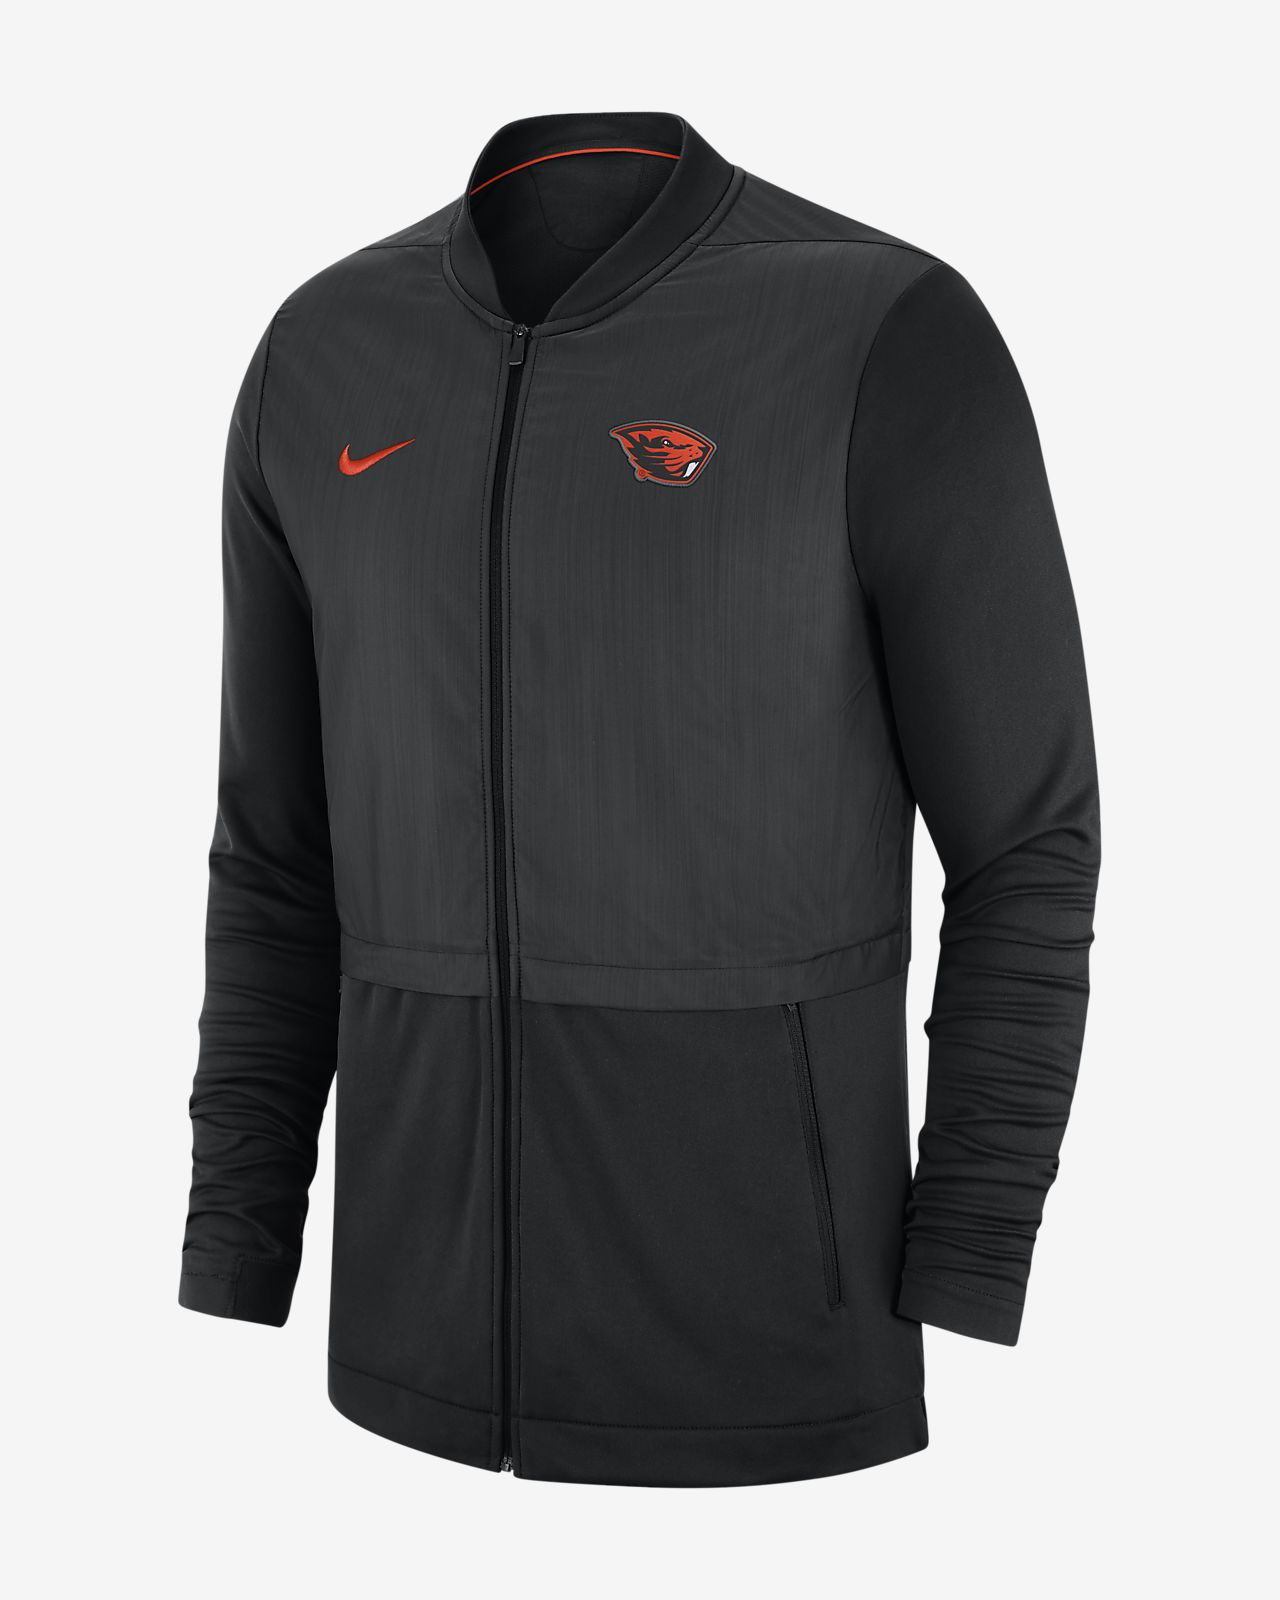 Nike College Dri-FIT Elite Hybrid (Oregon State) Men's Jacket